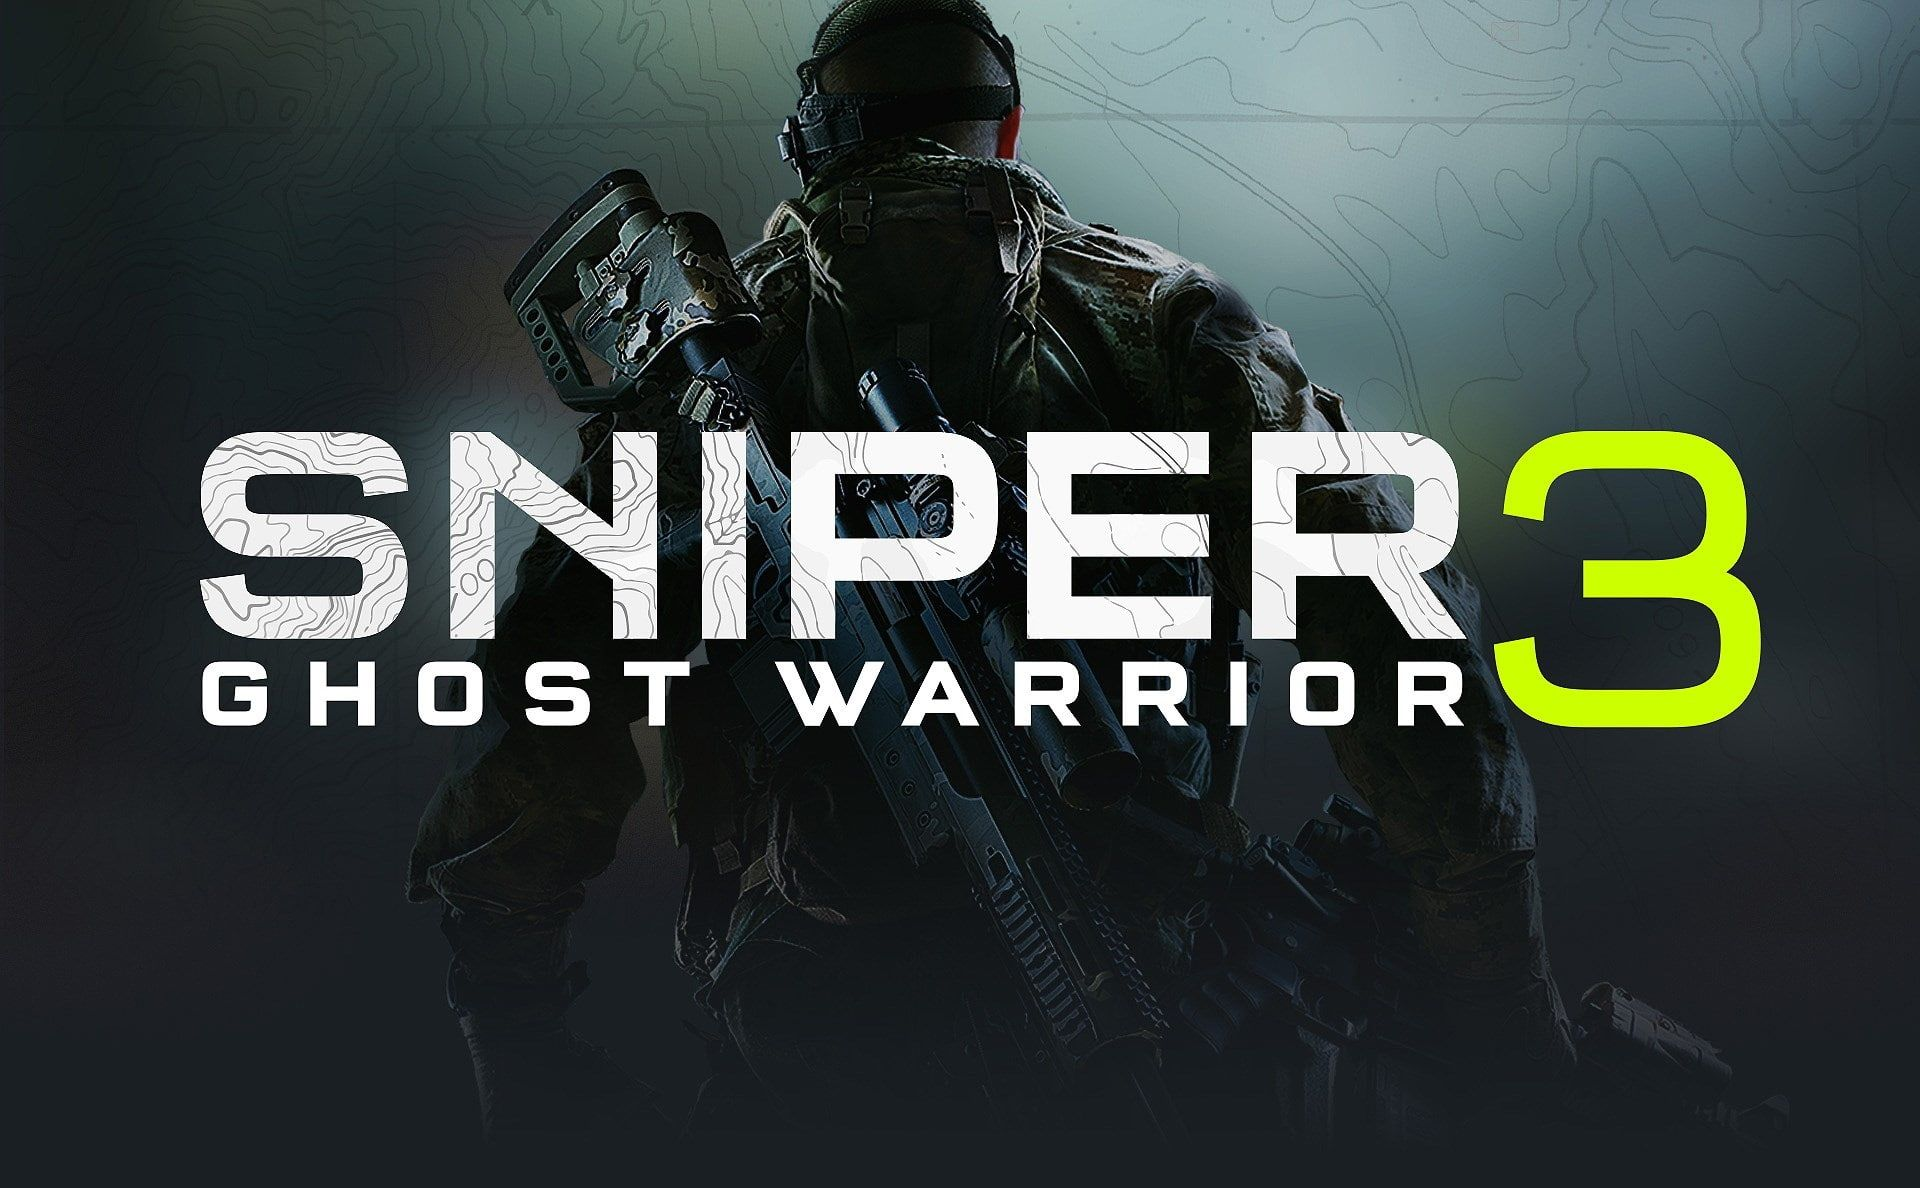 Sniper Ghost Warrior 3 Wallpaper For Android Ghost Warrior Sniper Sniper Ghost Warrior 3 Wallpapers